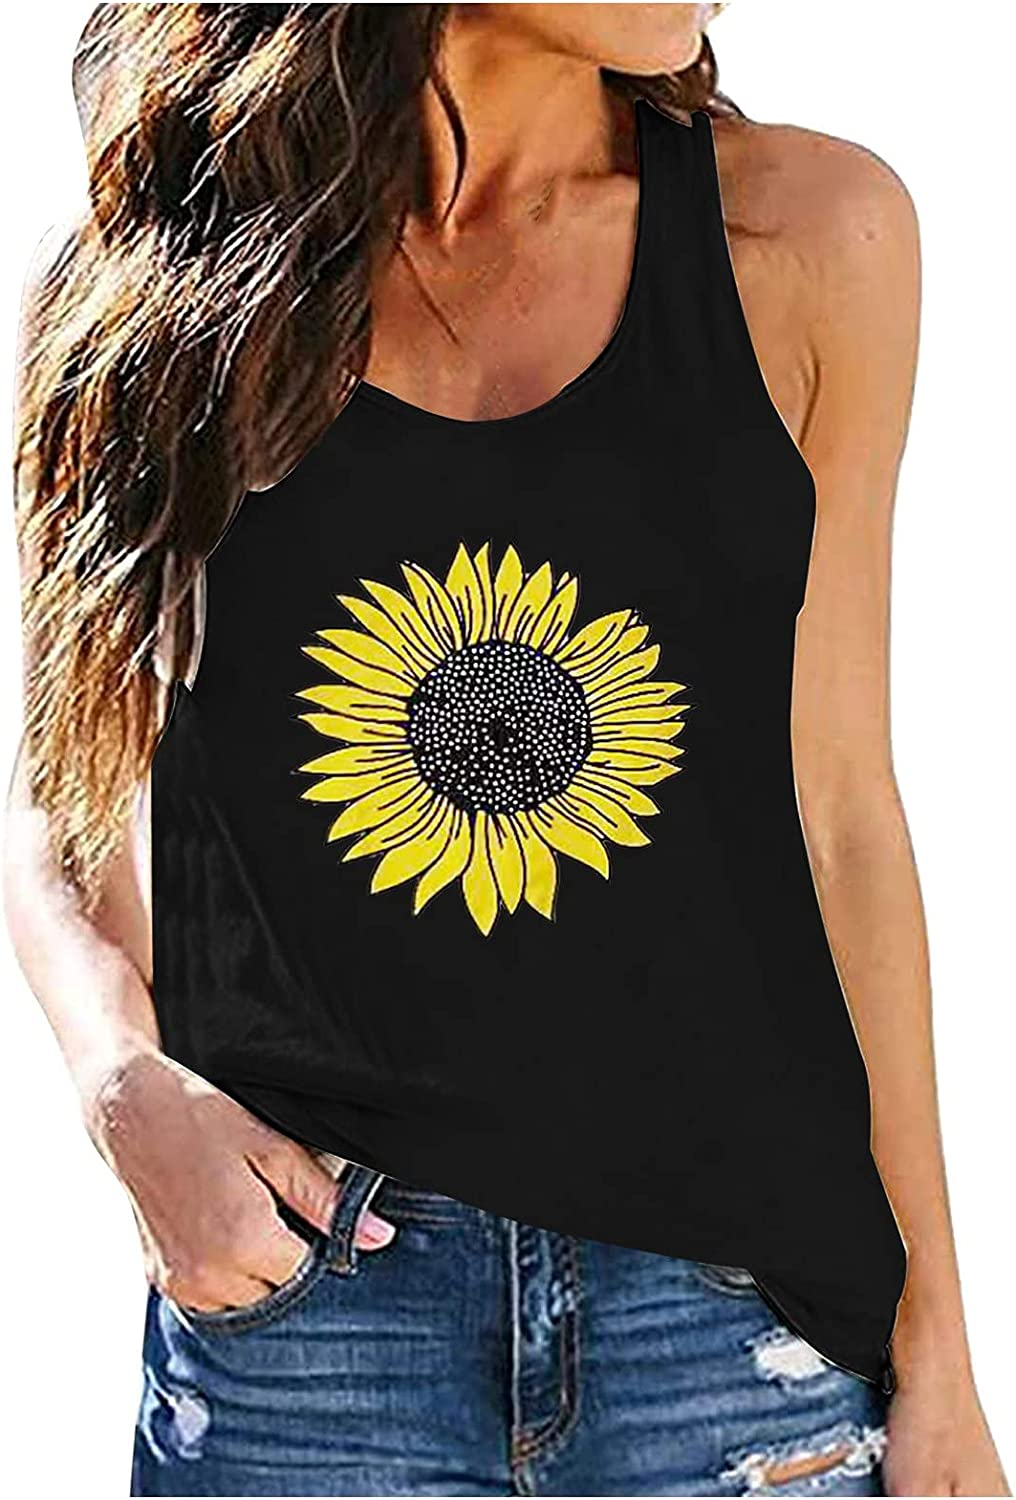 JPLZi Women Tank Top, Funny Sunflower Printed Graphic Vest Top Casual Tee Summer O-Neck T Shirt Tank Loose Fit Sleeveless